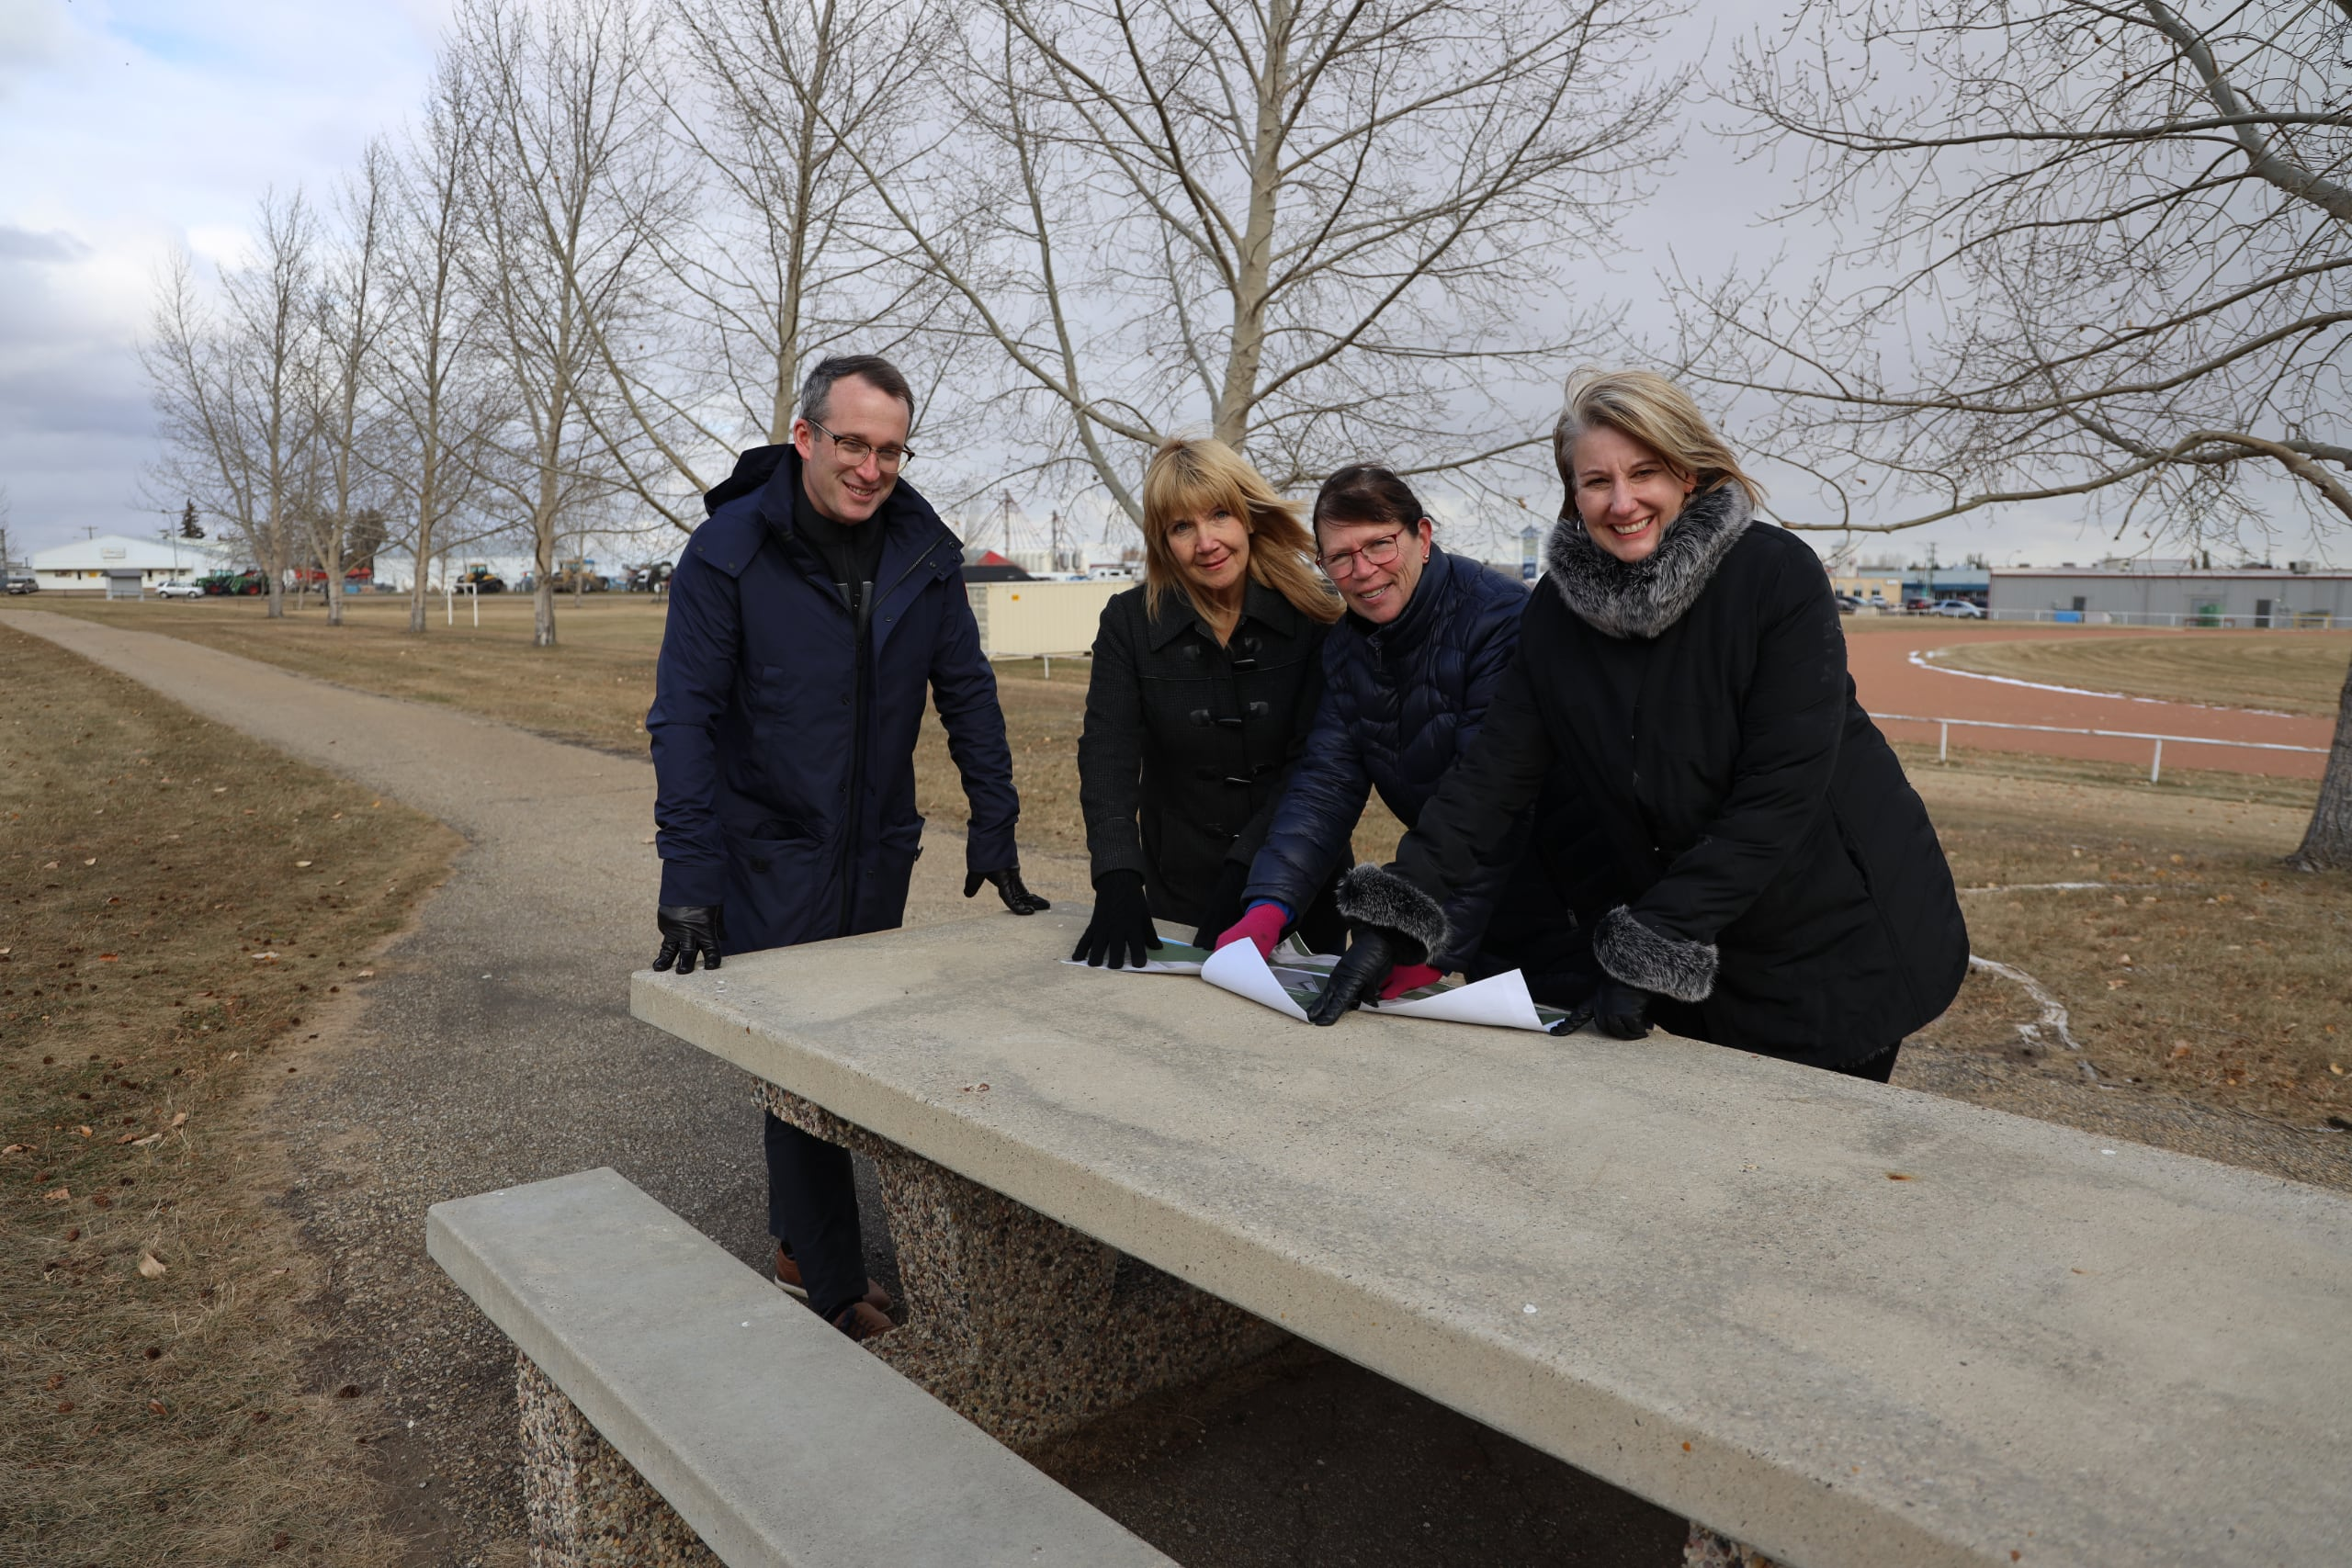 Part of the Vegreville Rotary Skatepark will include benches and walking paths.